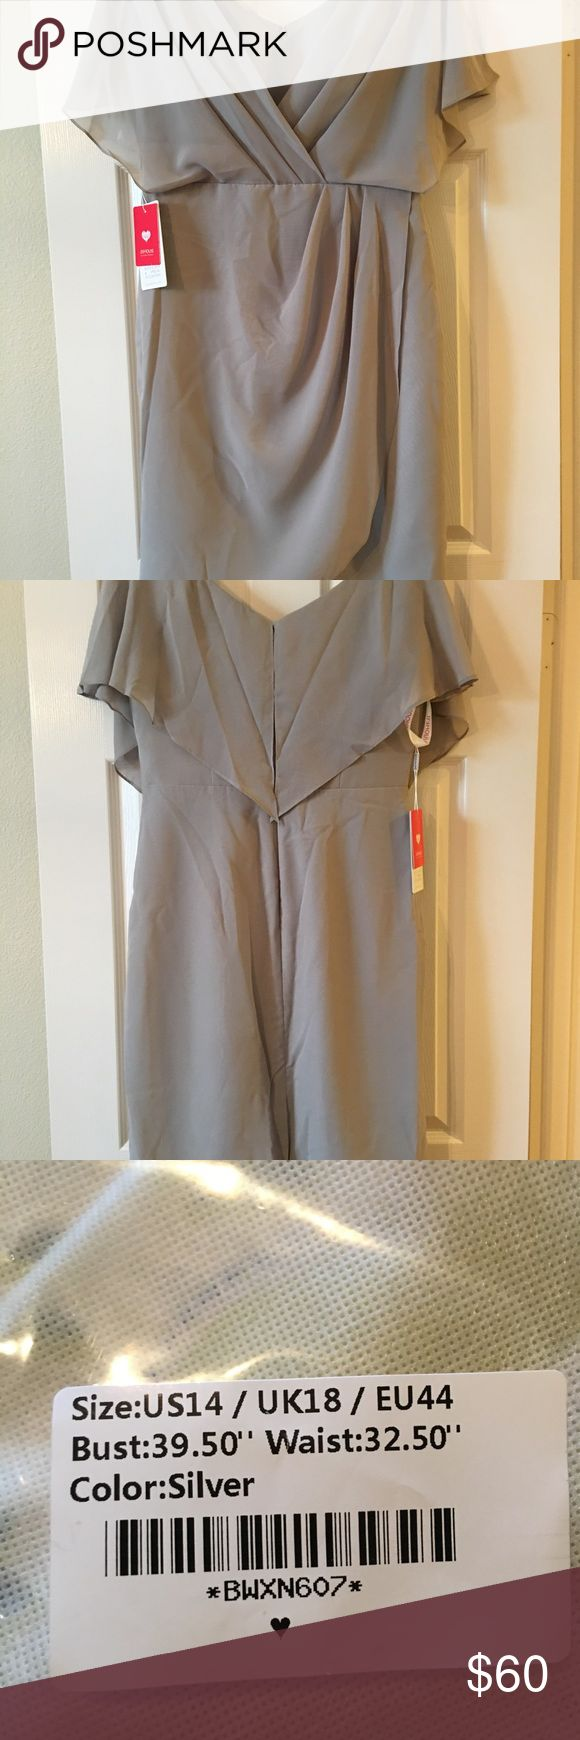 Silver brand new special occasion dress Silver chiffon special occasion dress. Brand new with rags. Size 14, but runs small. V neck, knee length. Very pretty. JJ's House Dresses Wedding